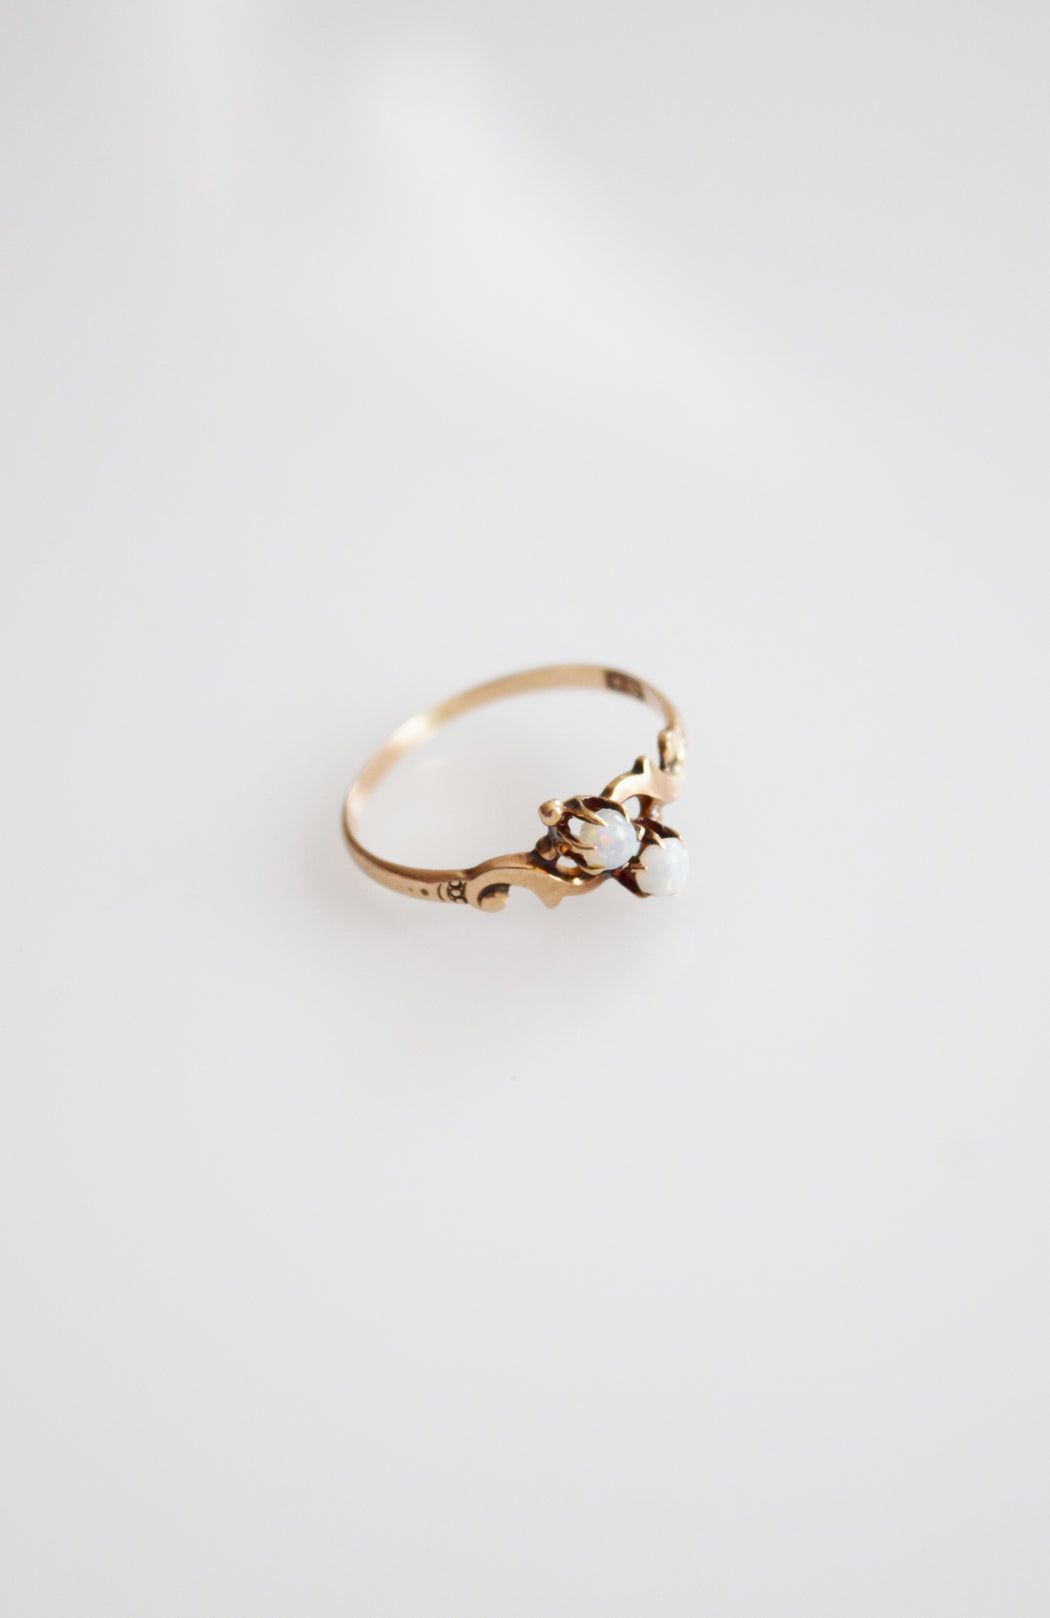 Victorian 10k Gold and Opal Ring by Allsopp Bros.